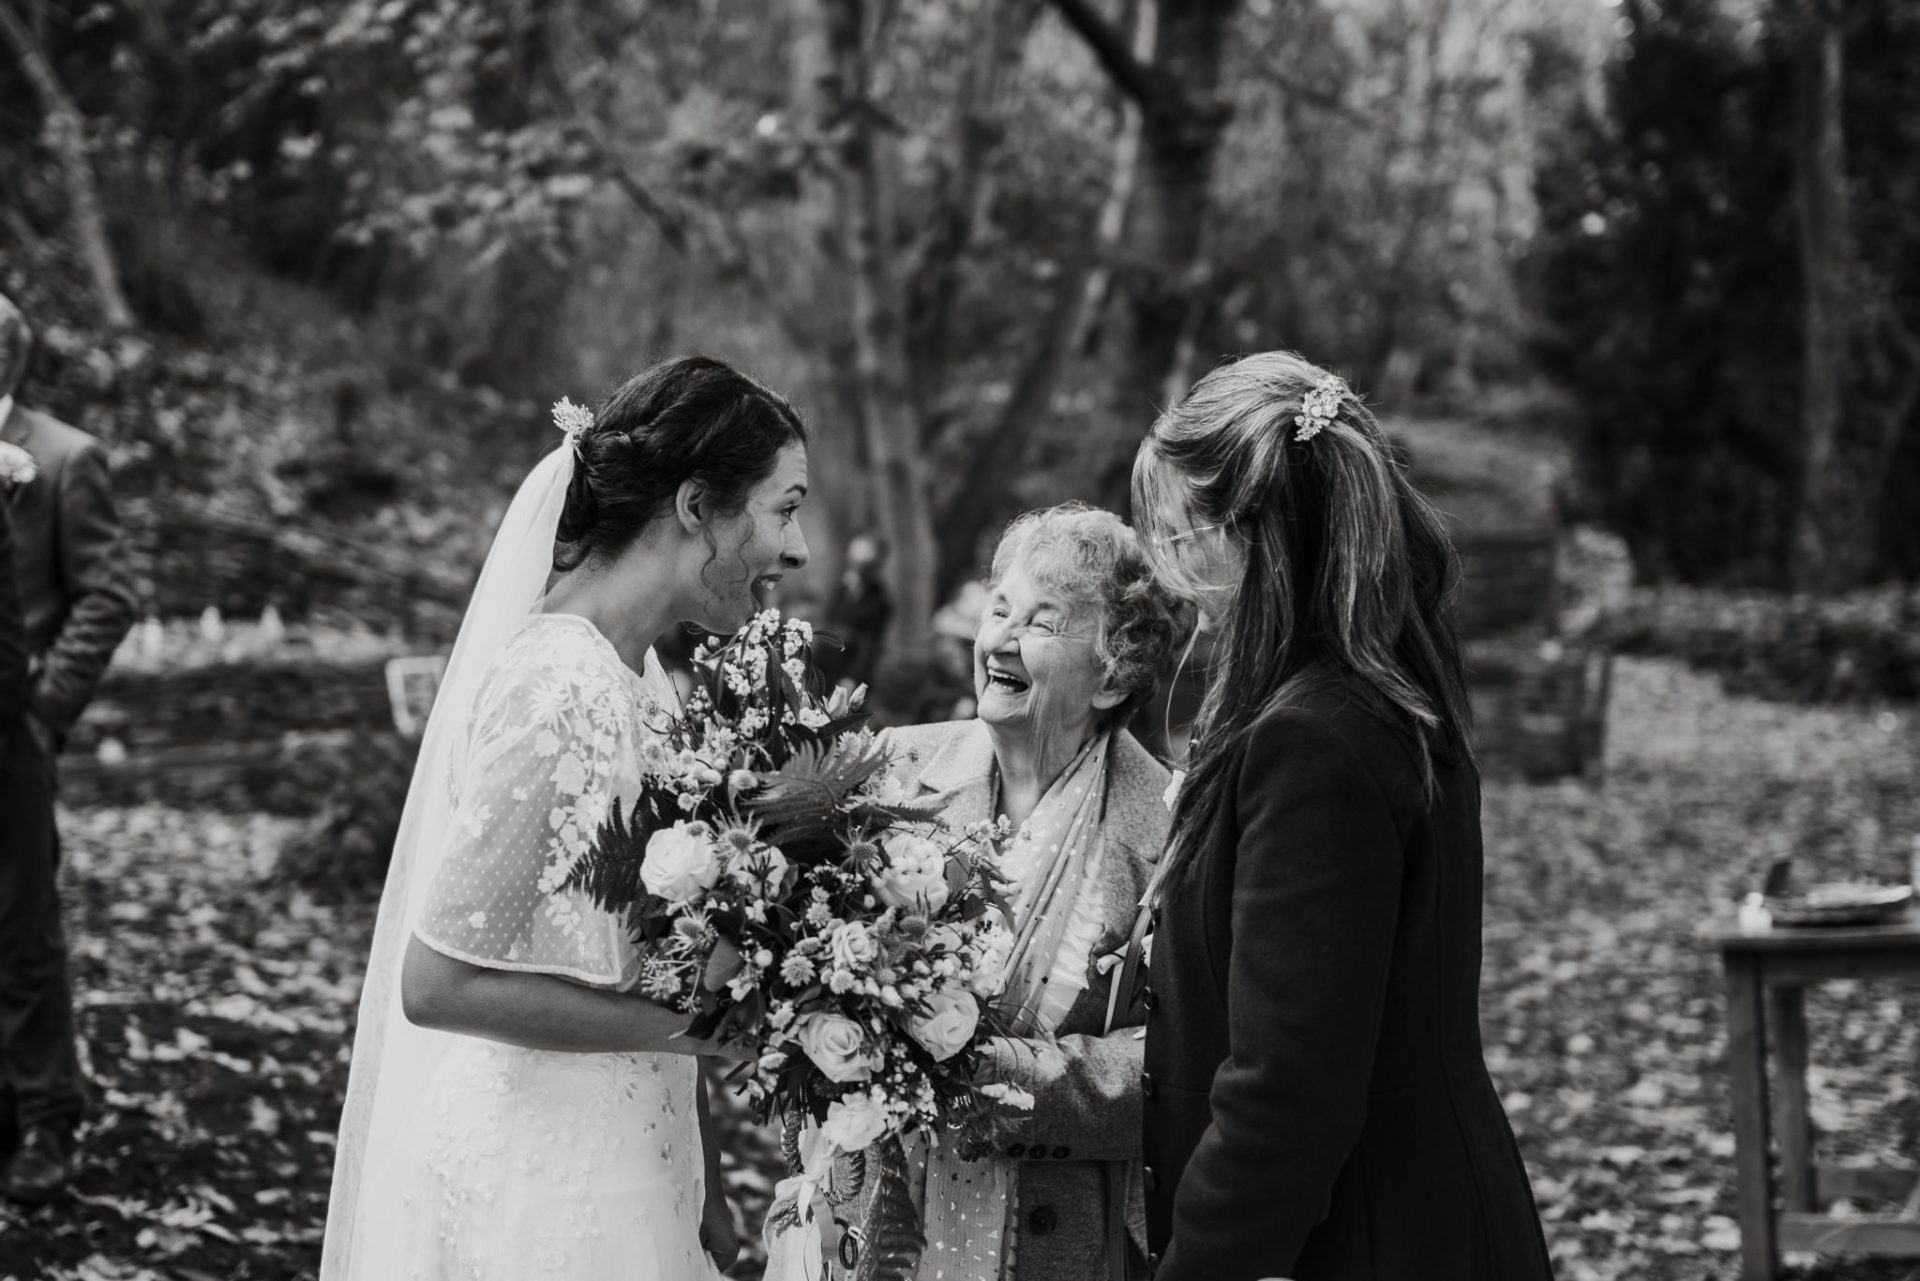 bride mother and grandmother 3 generations